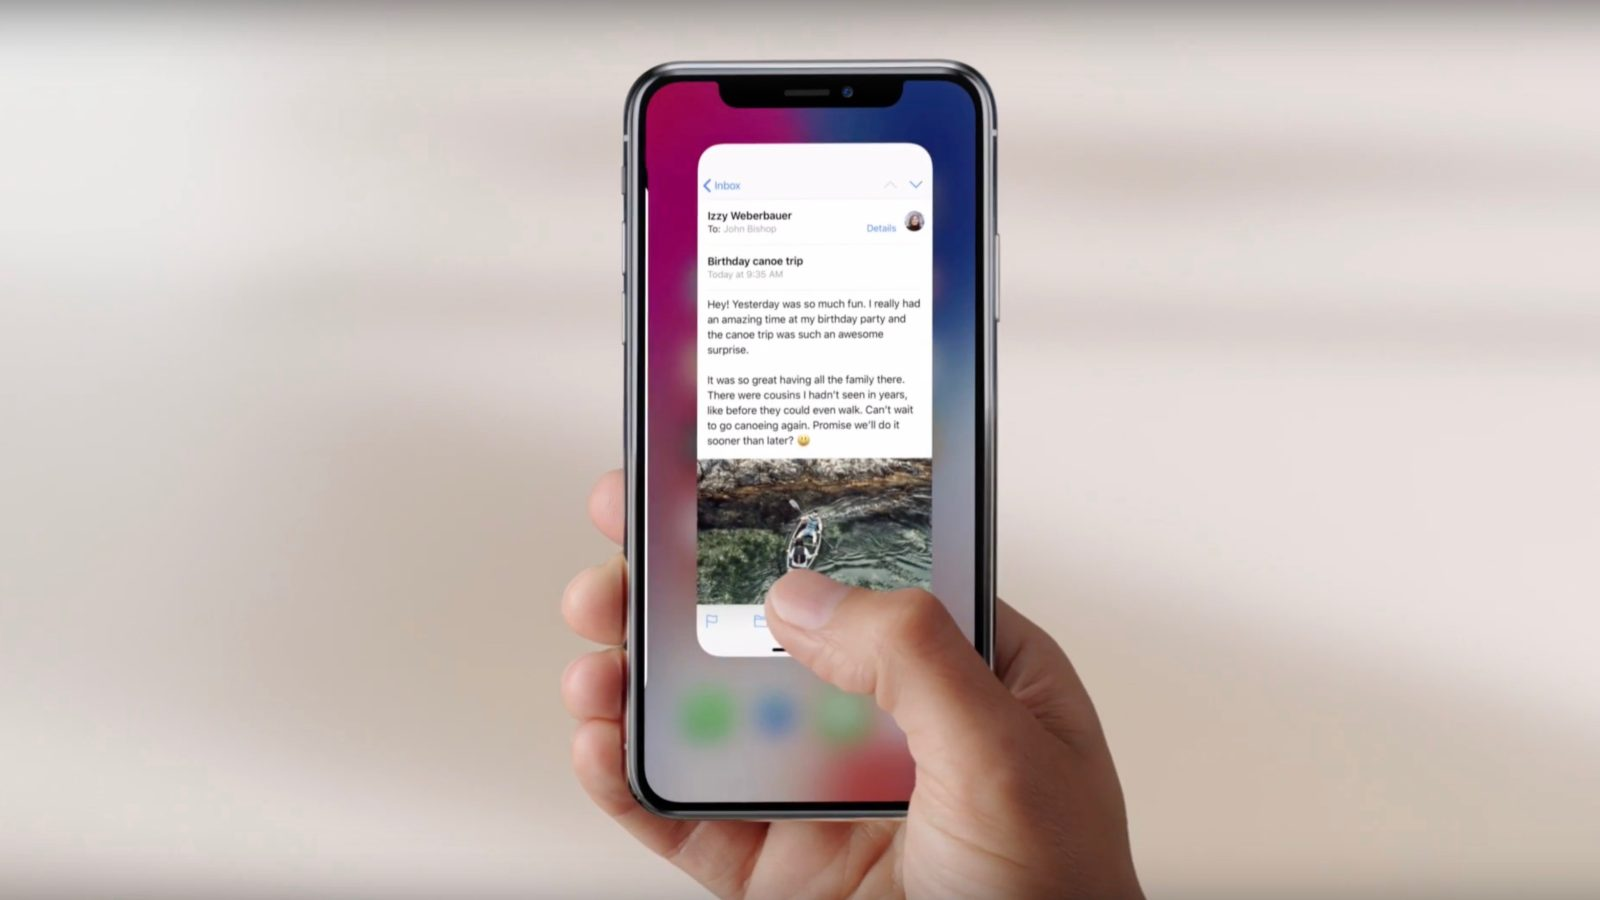 defdfe0f4b Apple releases iPhone X guided tour video to help users with changes and  new features